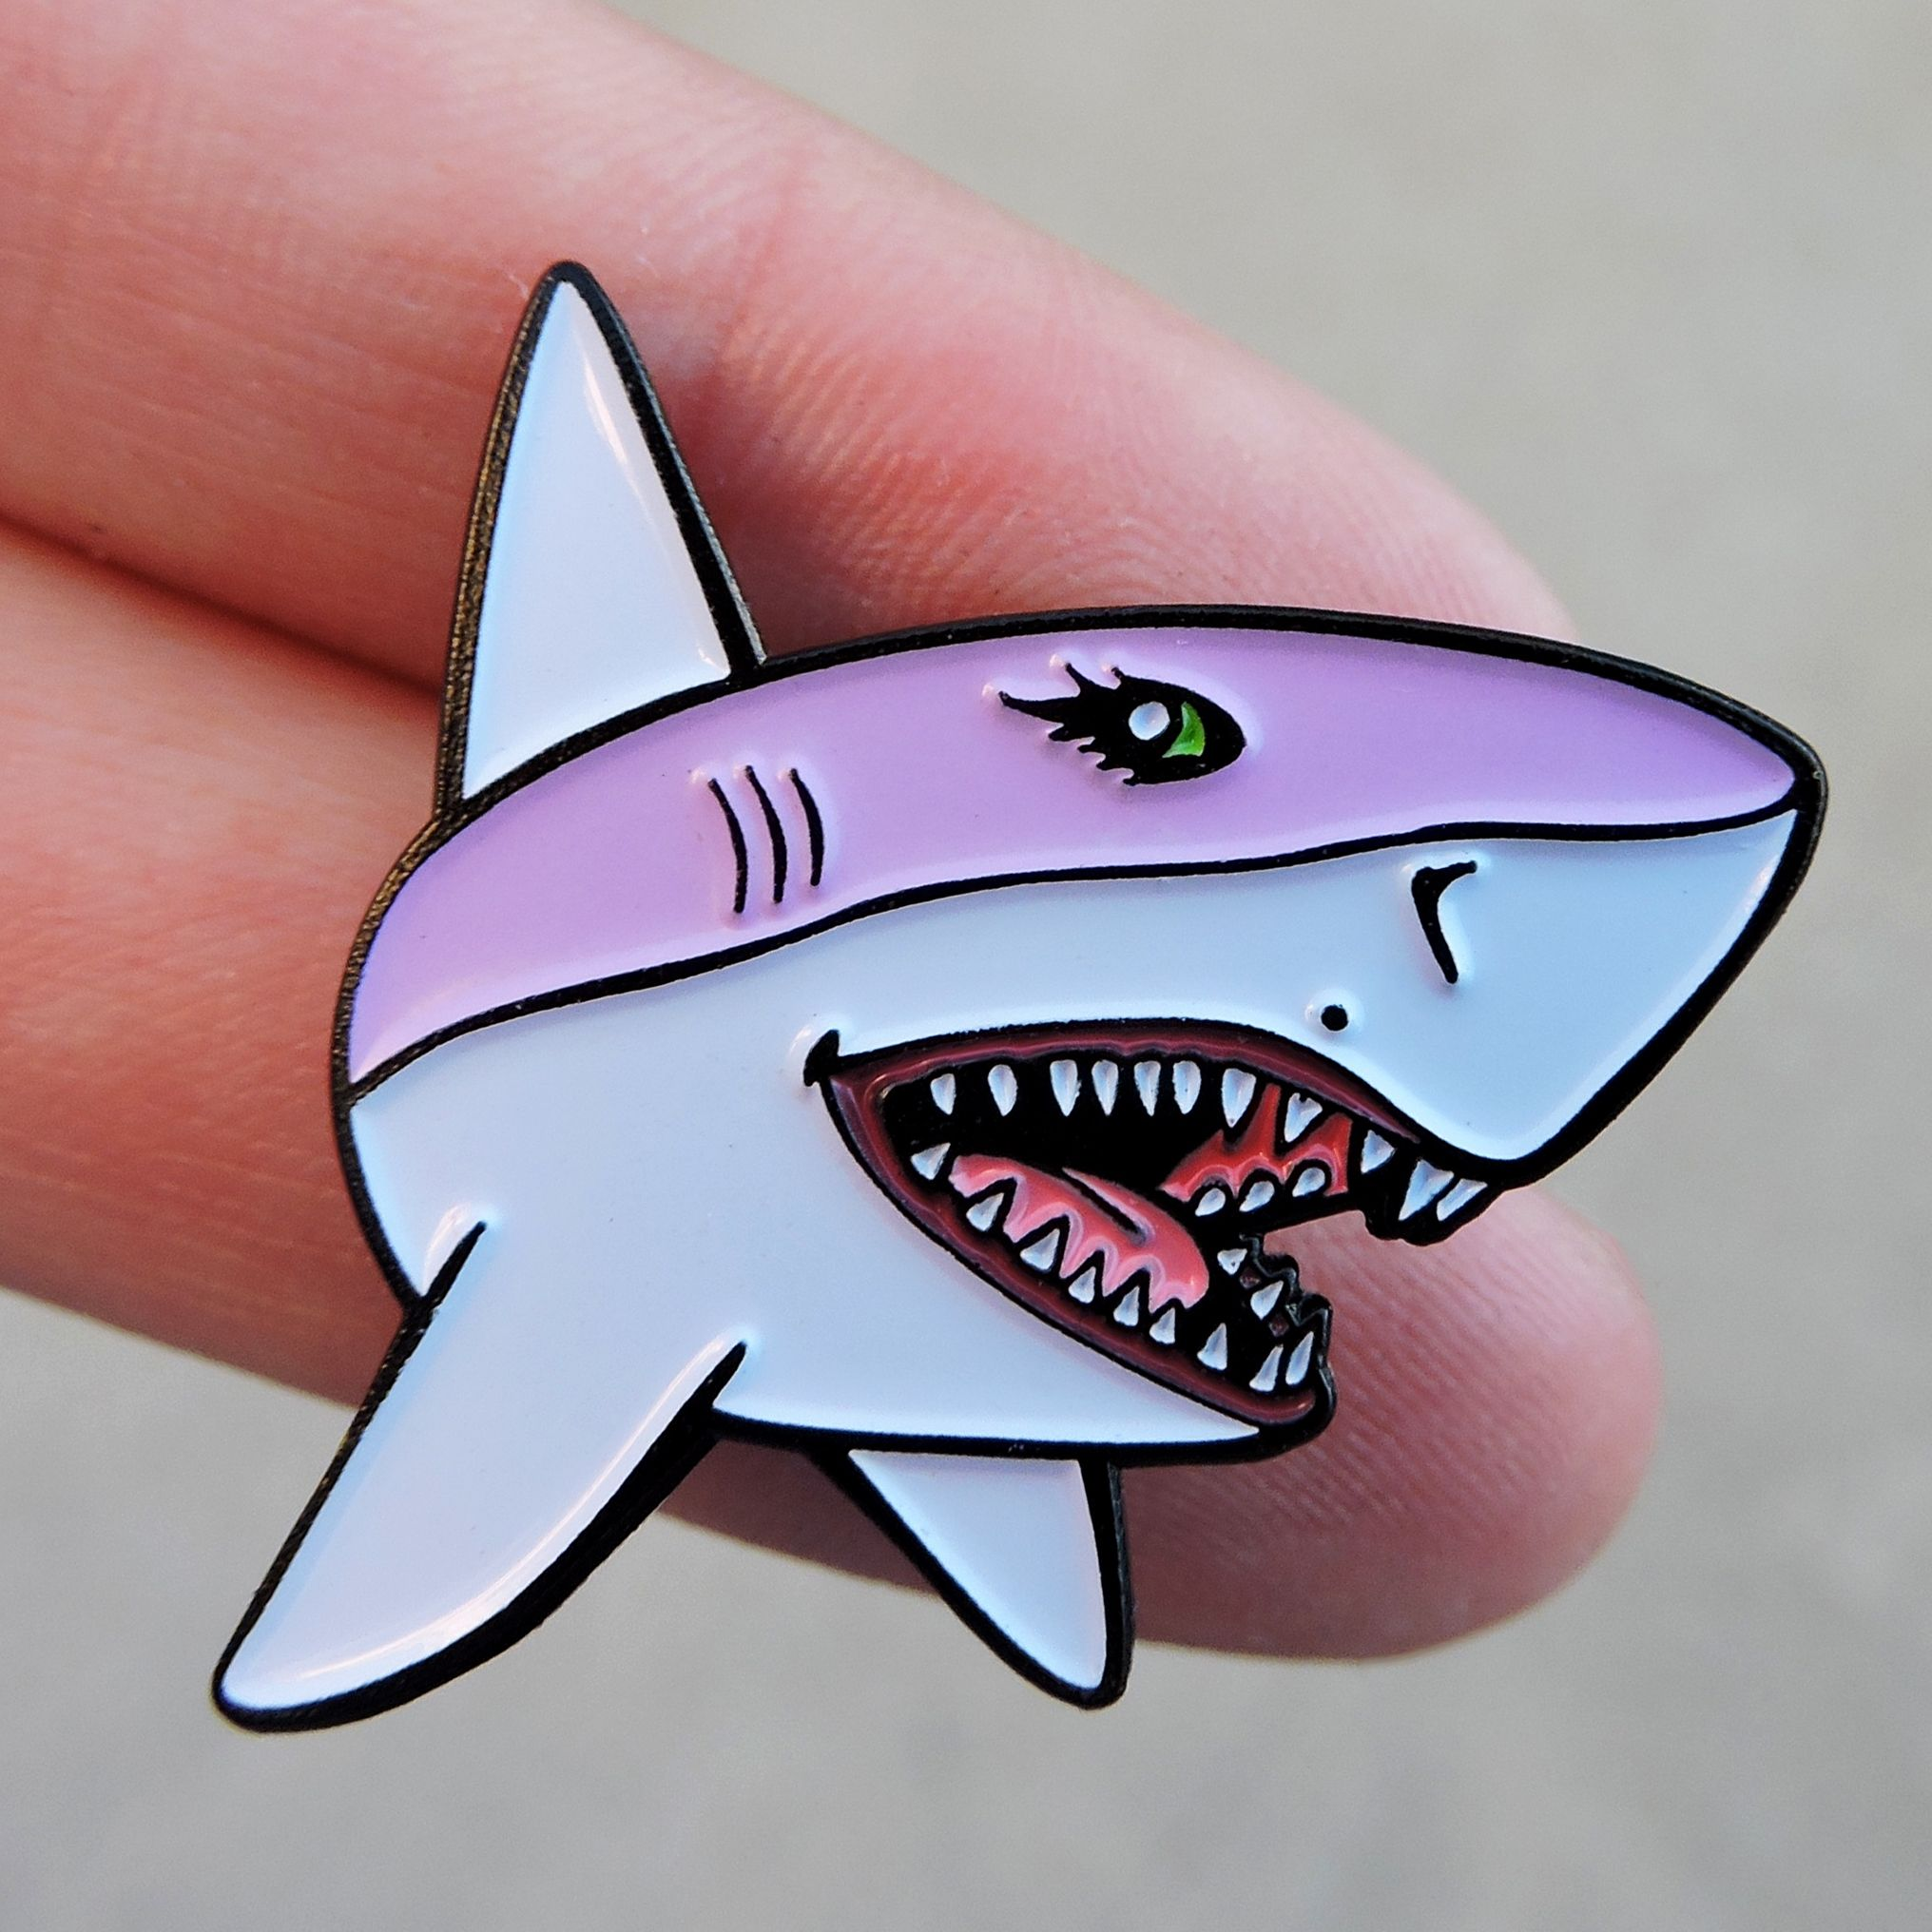 superb Terestpin Part - 4: Babeshark pin